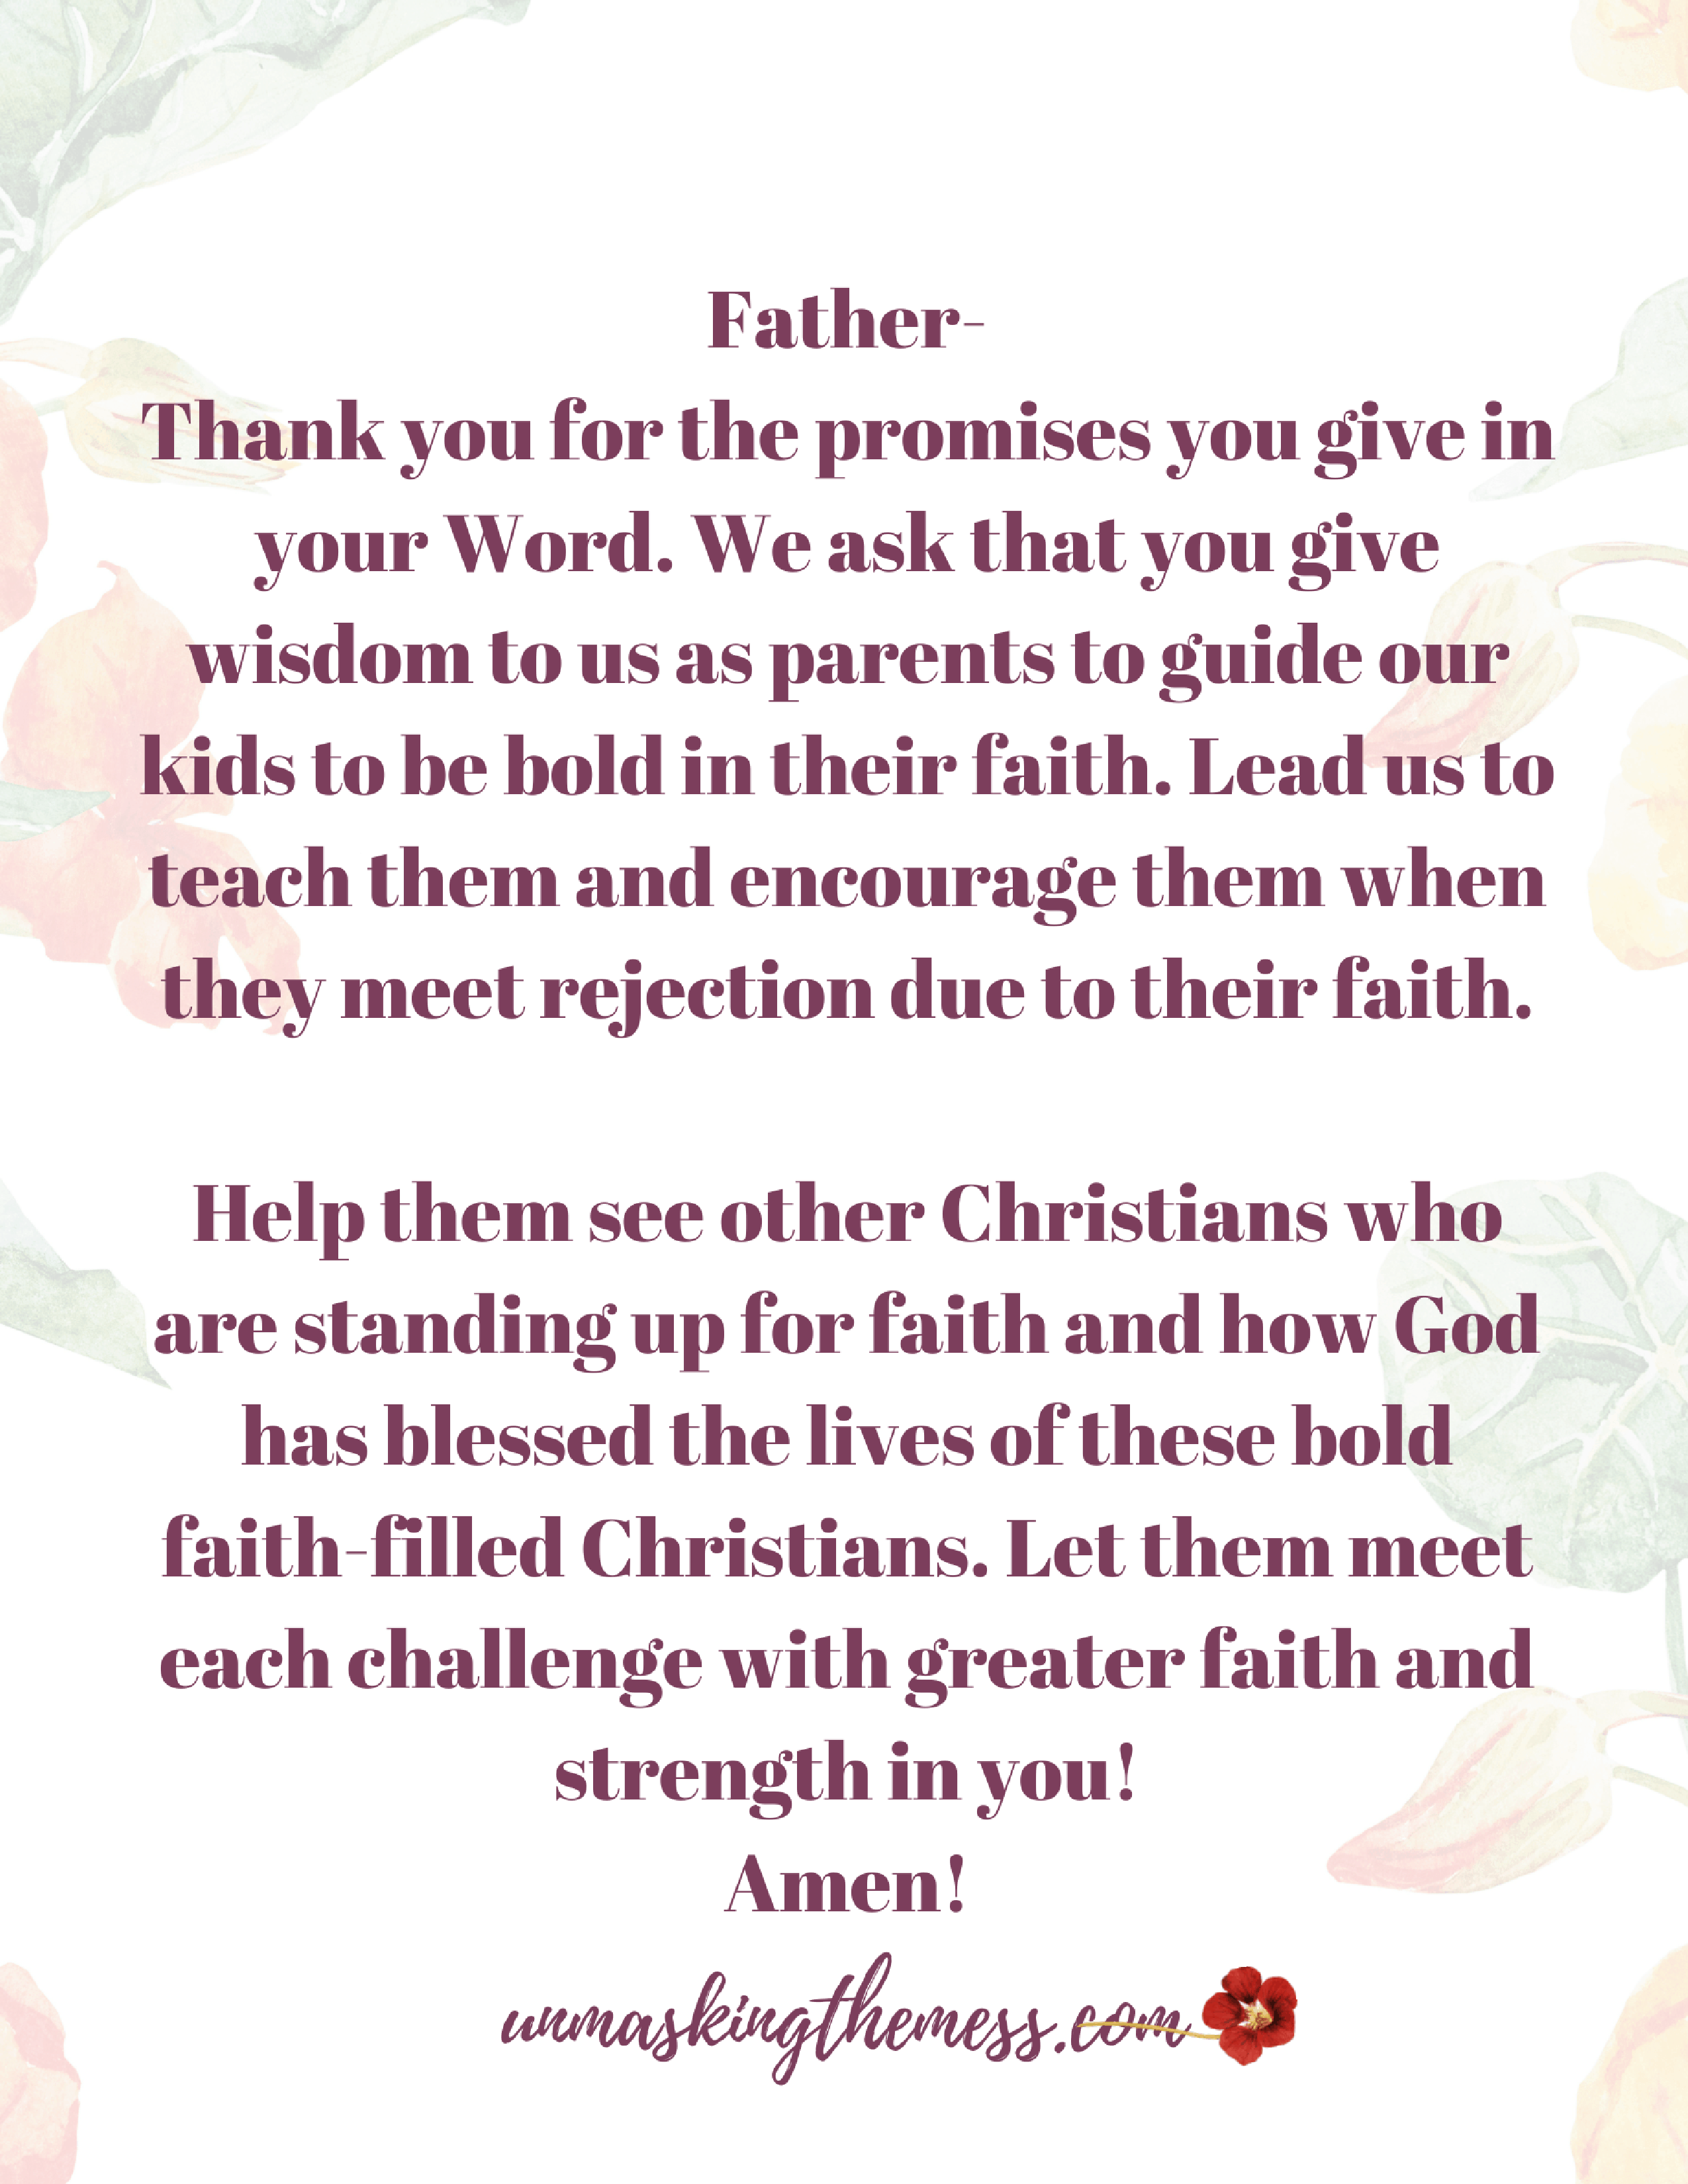 The Best Way to Help your Child Deal with Faith Rejection. The reality is, our kids will feel the effects of being Christians in a sinful world. What is the best way to help our child deal with faith rejection?#fearof #overcoming #howtohandle #dealing